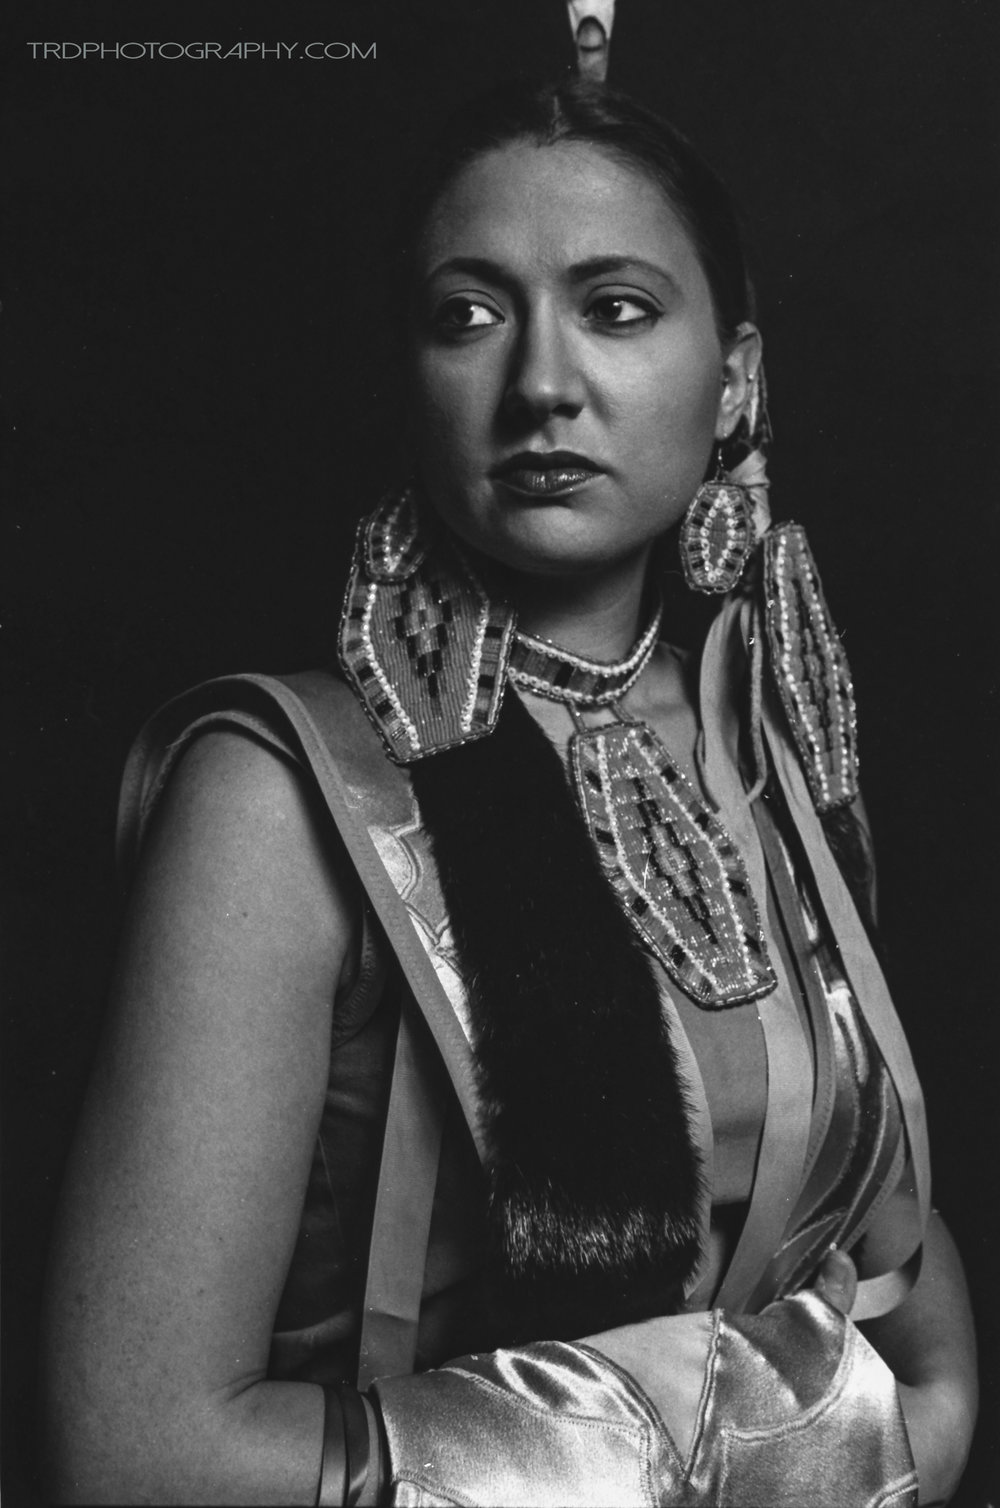 Holly Lynn - Native American Portrait Series - TRD Photography